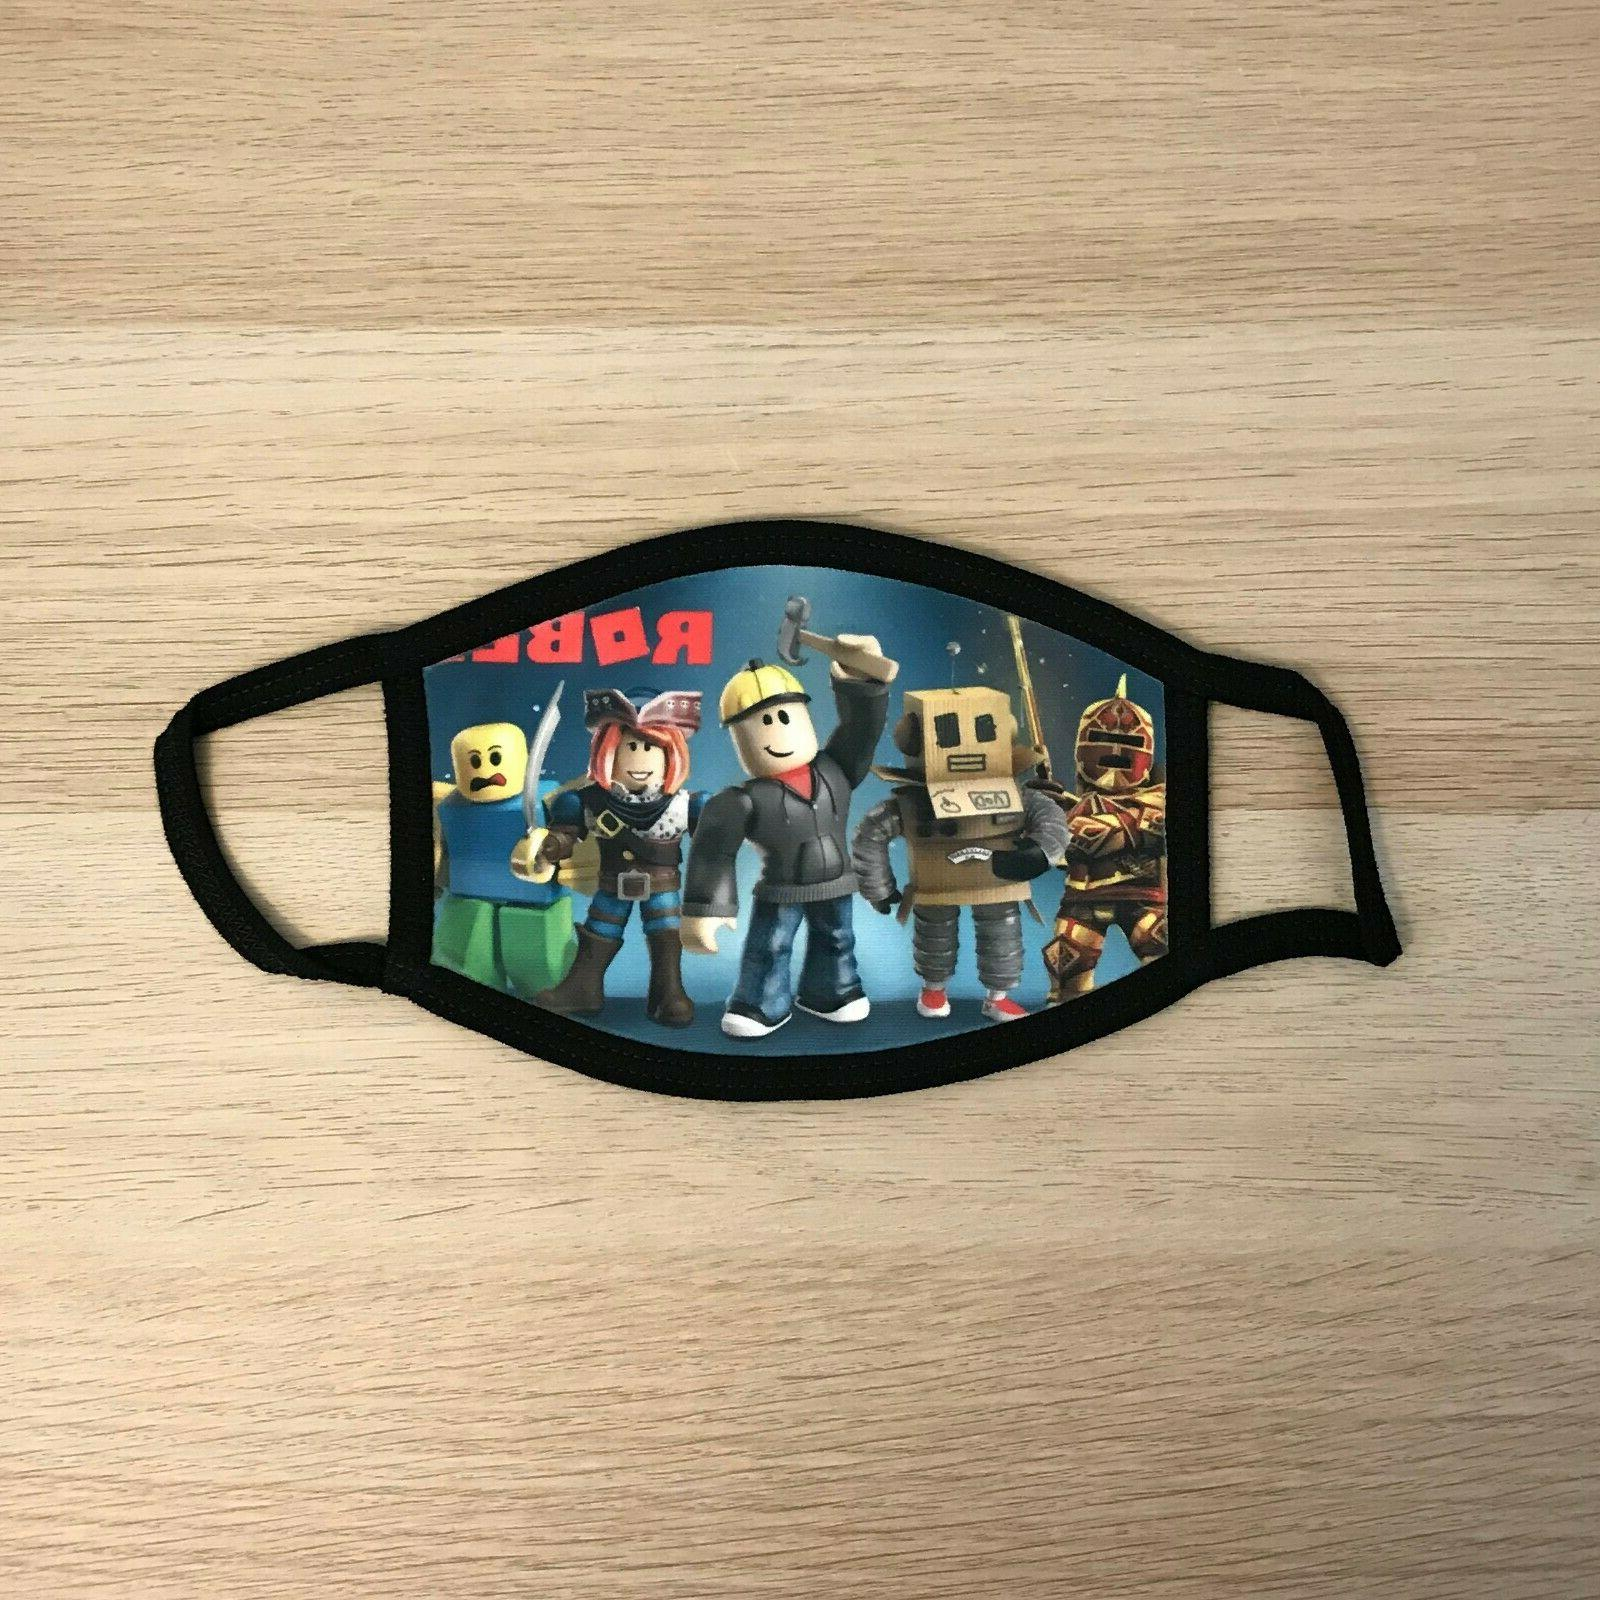 roblox game face mask teens kids ages